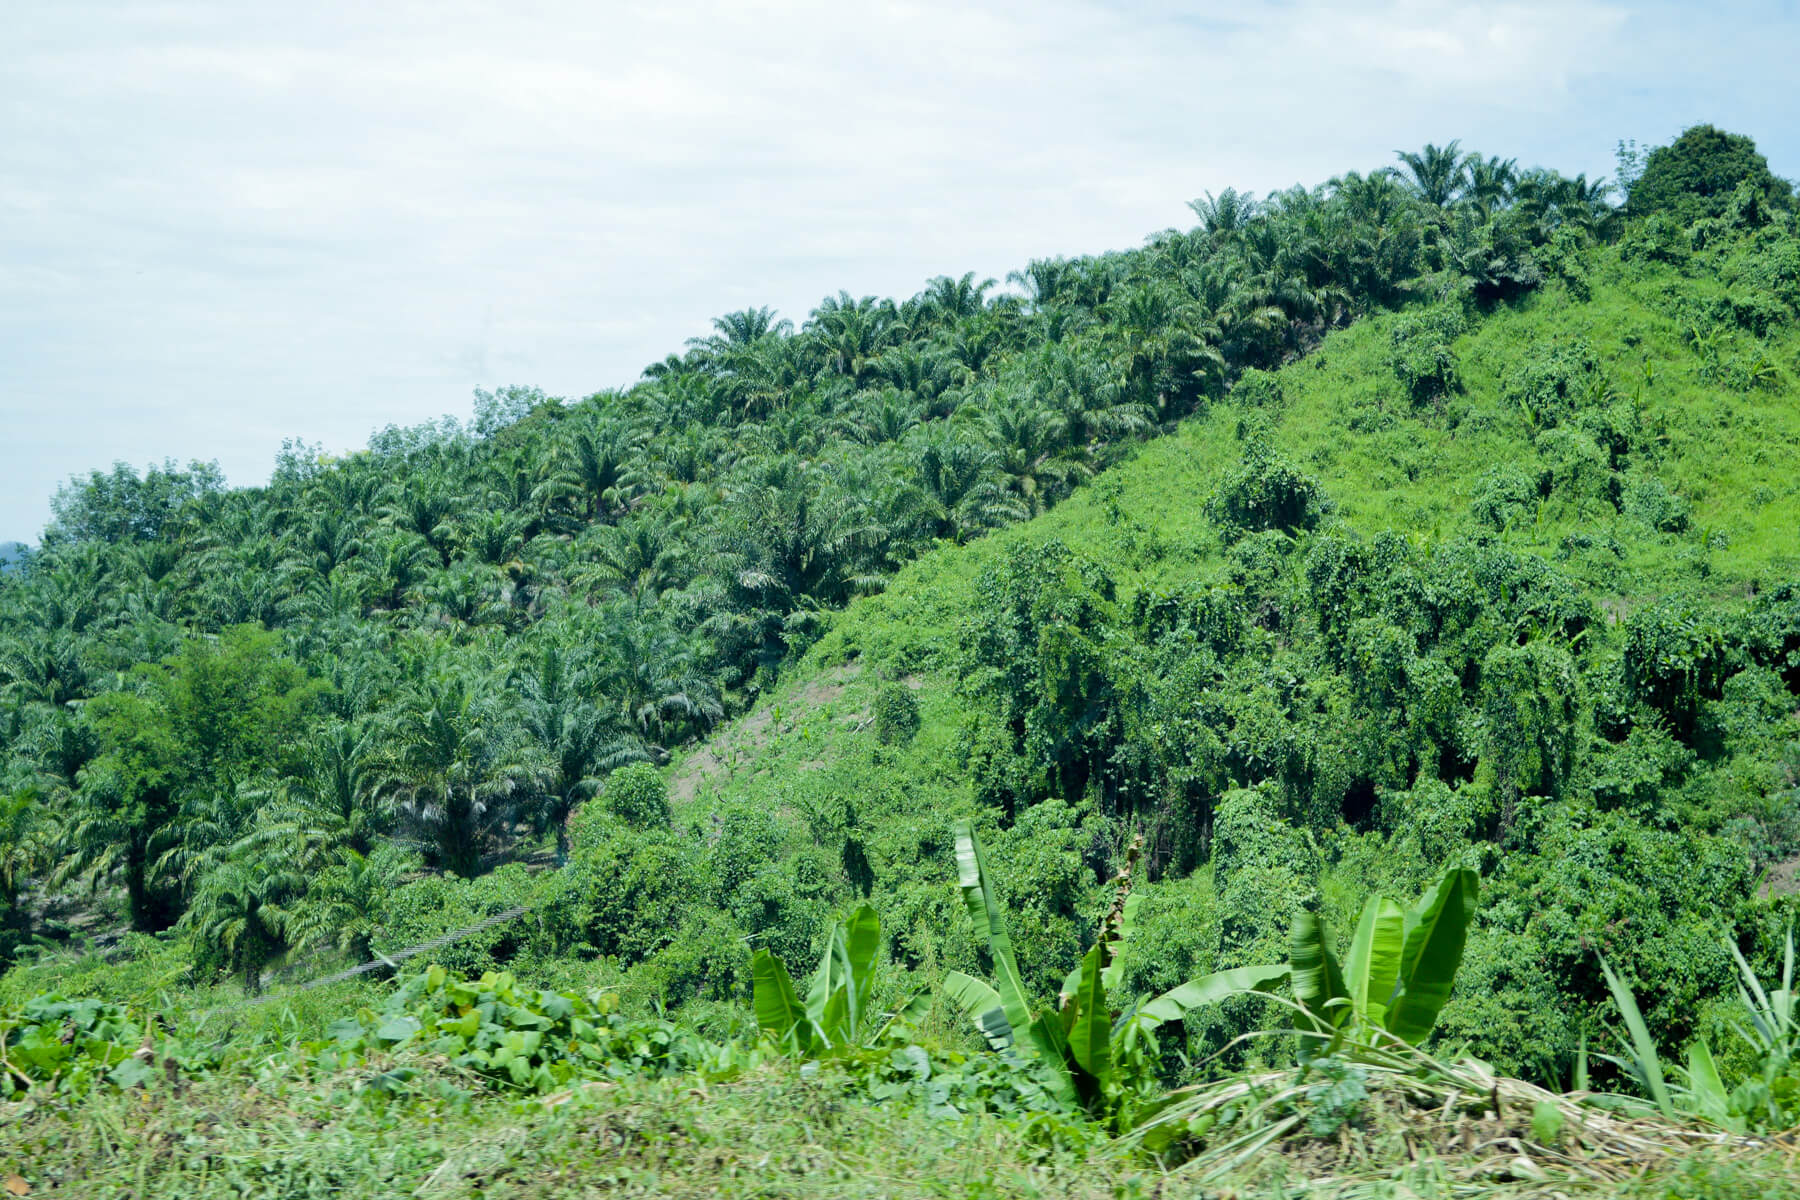 Palm Oil trees in a plantation on the side of a hill